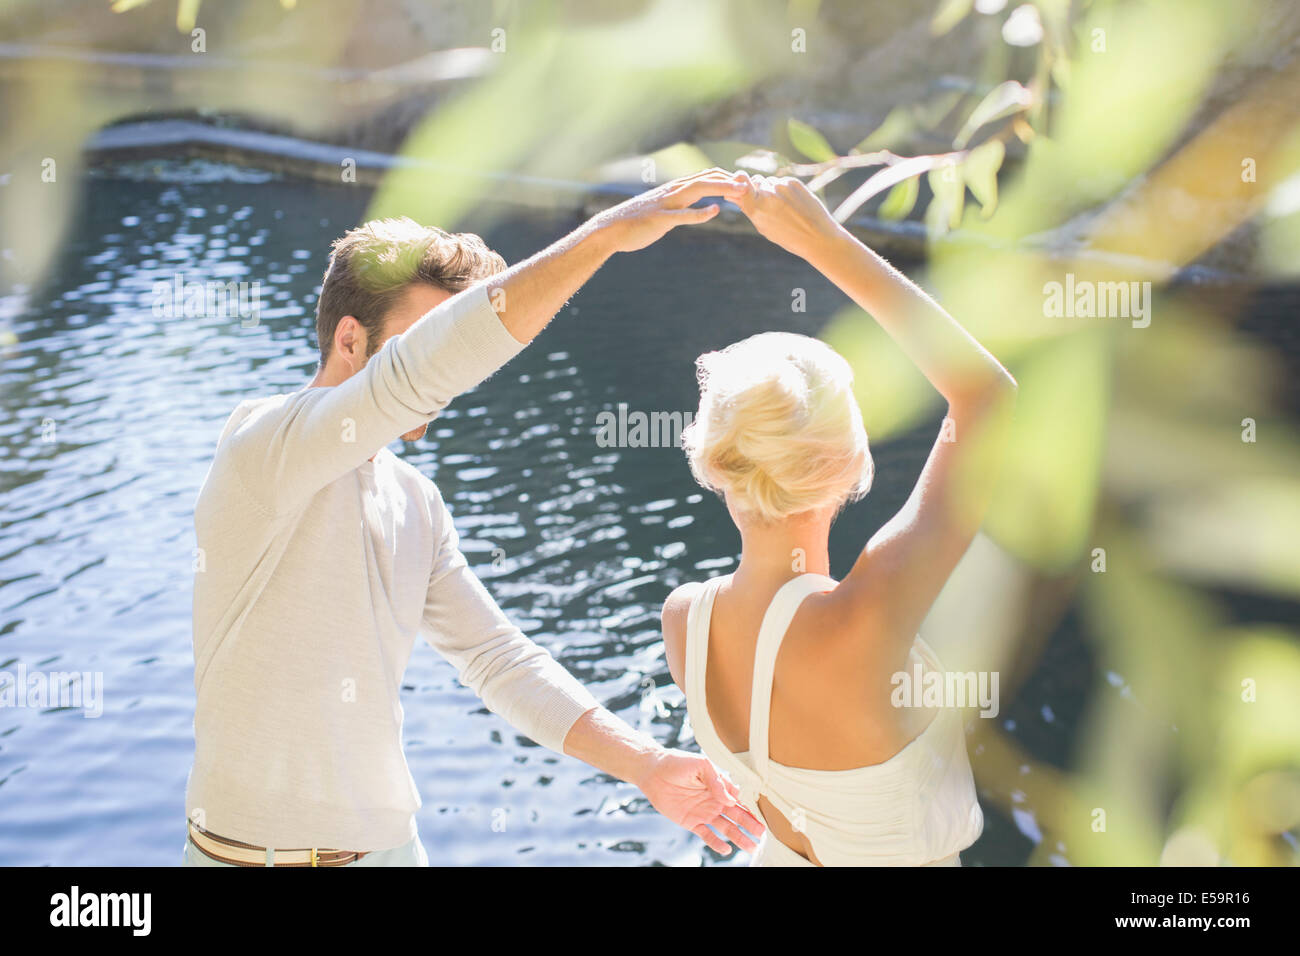 Couple dancing by pool - Stock Image